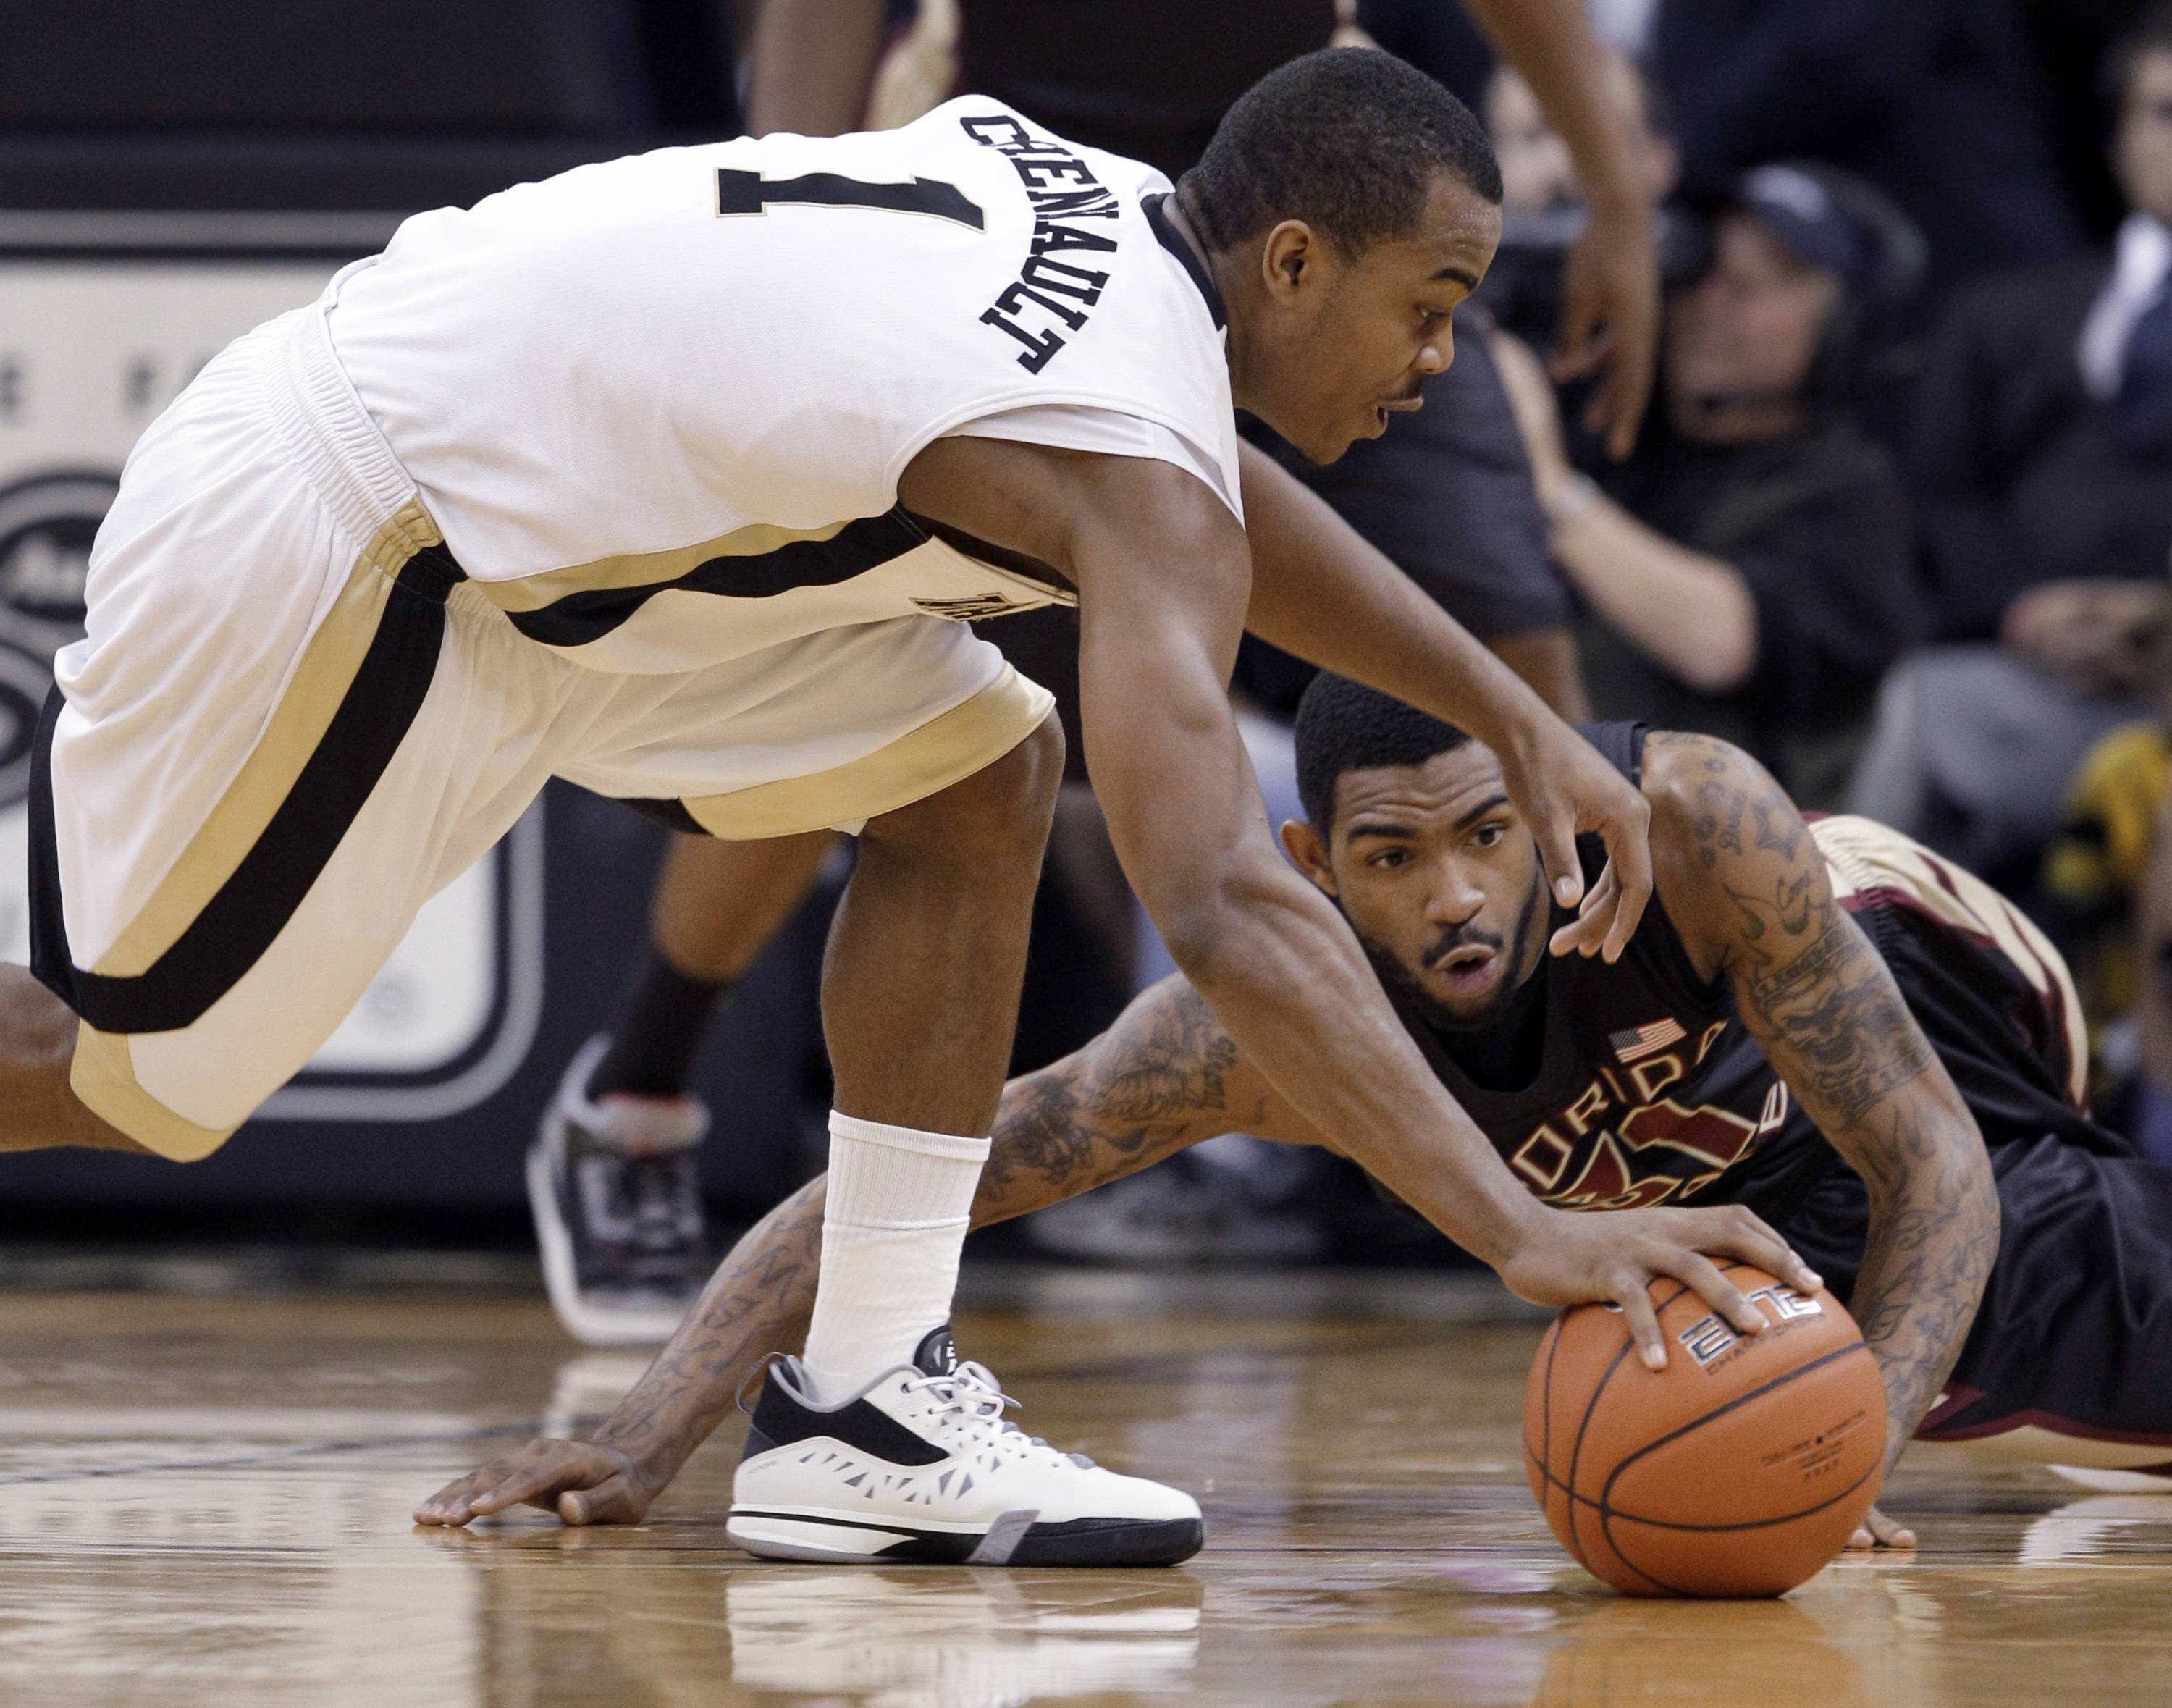 Wake Forest's Tony Chennault (1) and Florida State's Terry Whisnant chase a loose ball during the second half of Florida State's 75-52 win. (AP Photo/Chuck Burton)